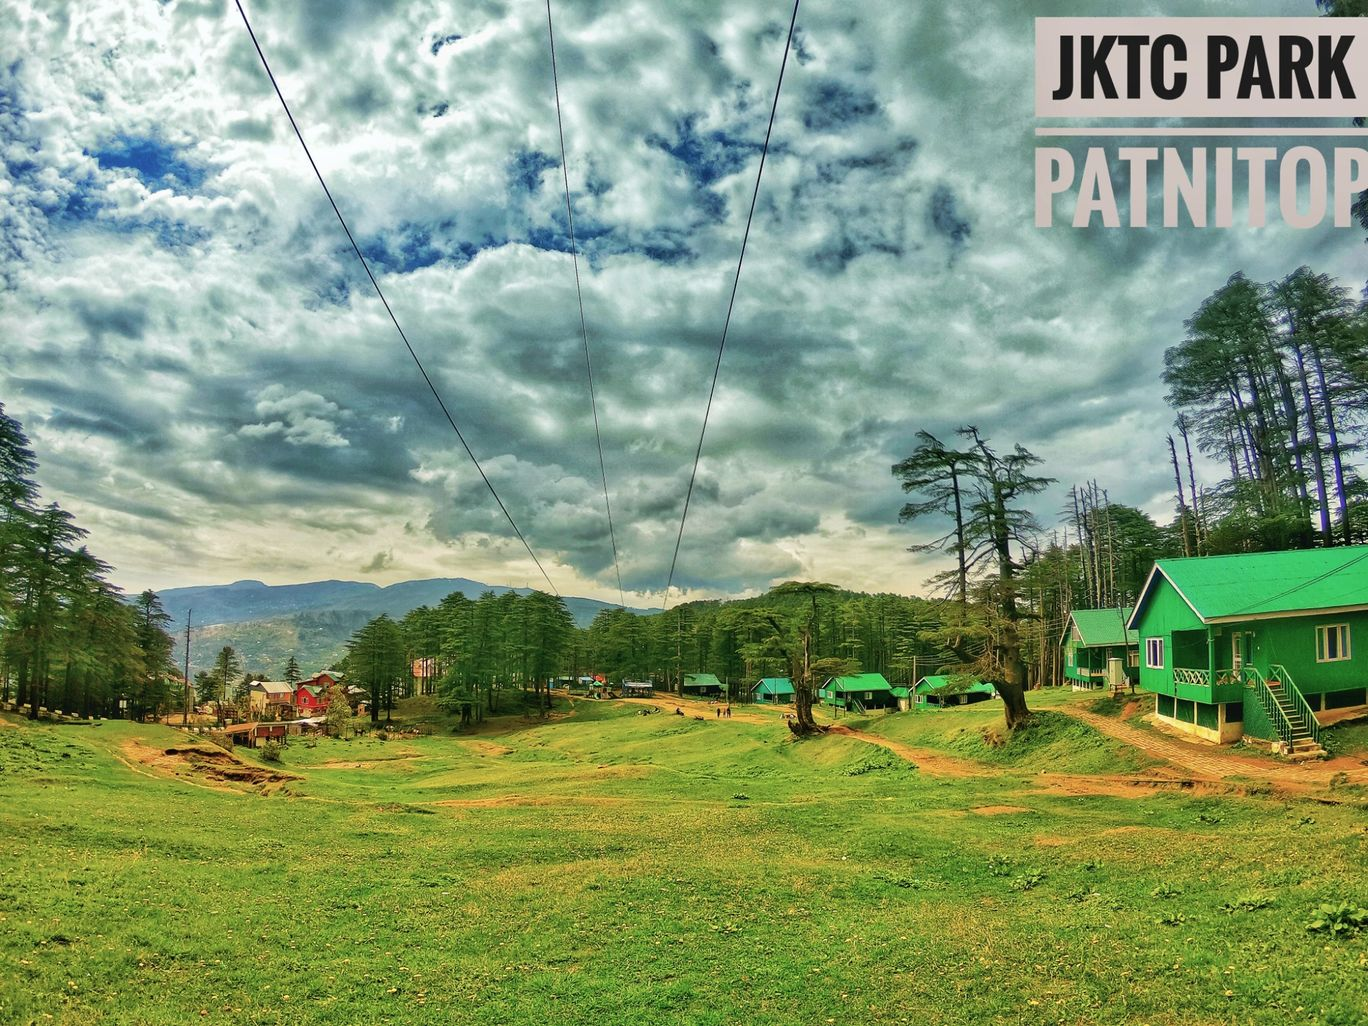 Photo of Patni Top Park By Indiangopro. traveller